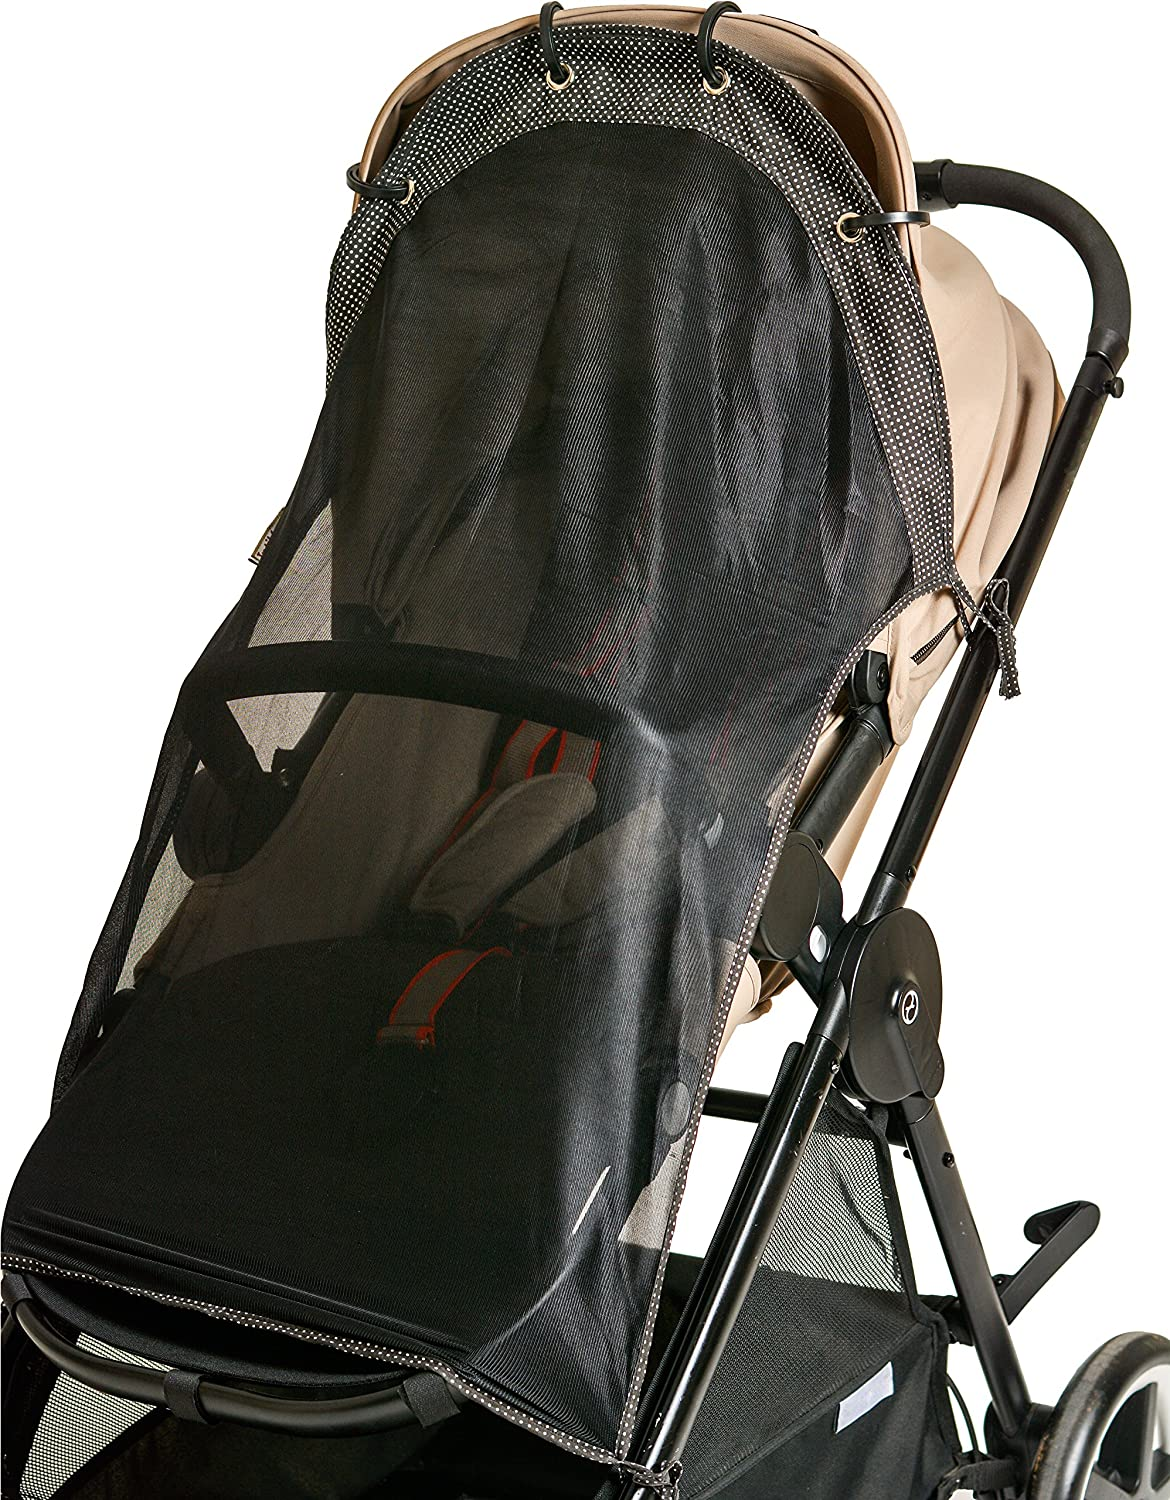 Sun Shade for Strollers (Long). Universal Adjustable SPF 30+ Sunshade with See Through. Your Baby Will See the World and Will Be Protected. byIntiMom Topalyz